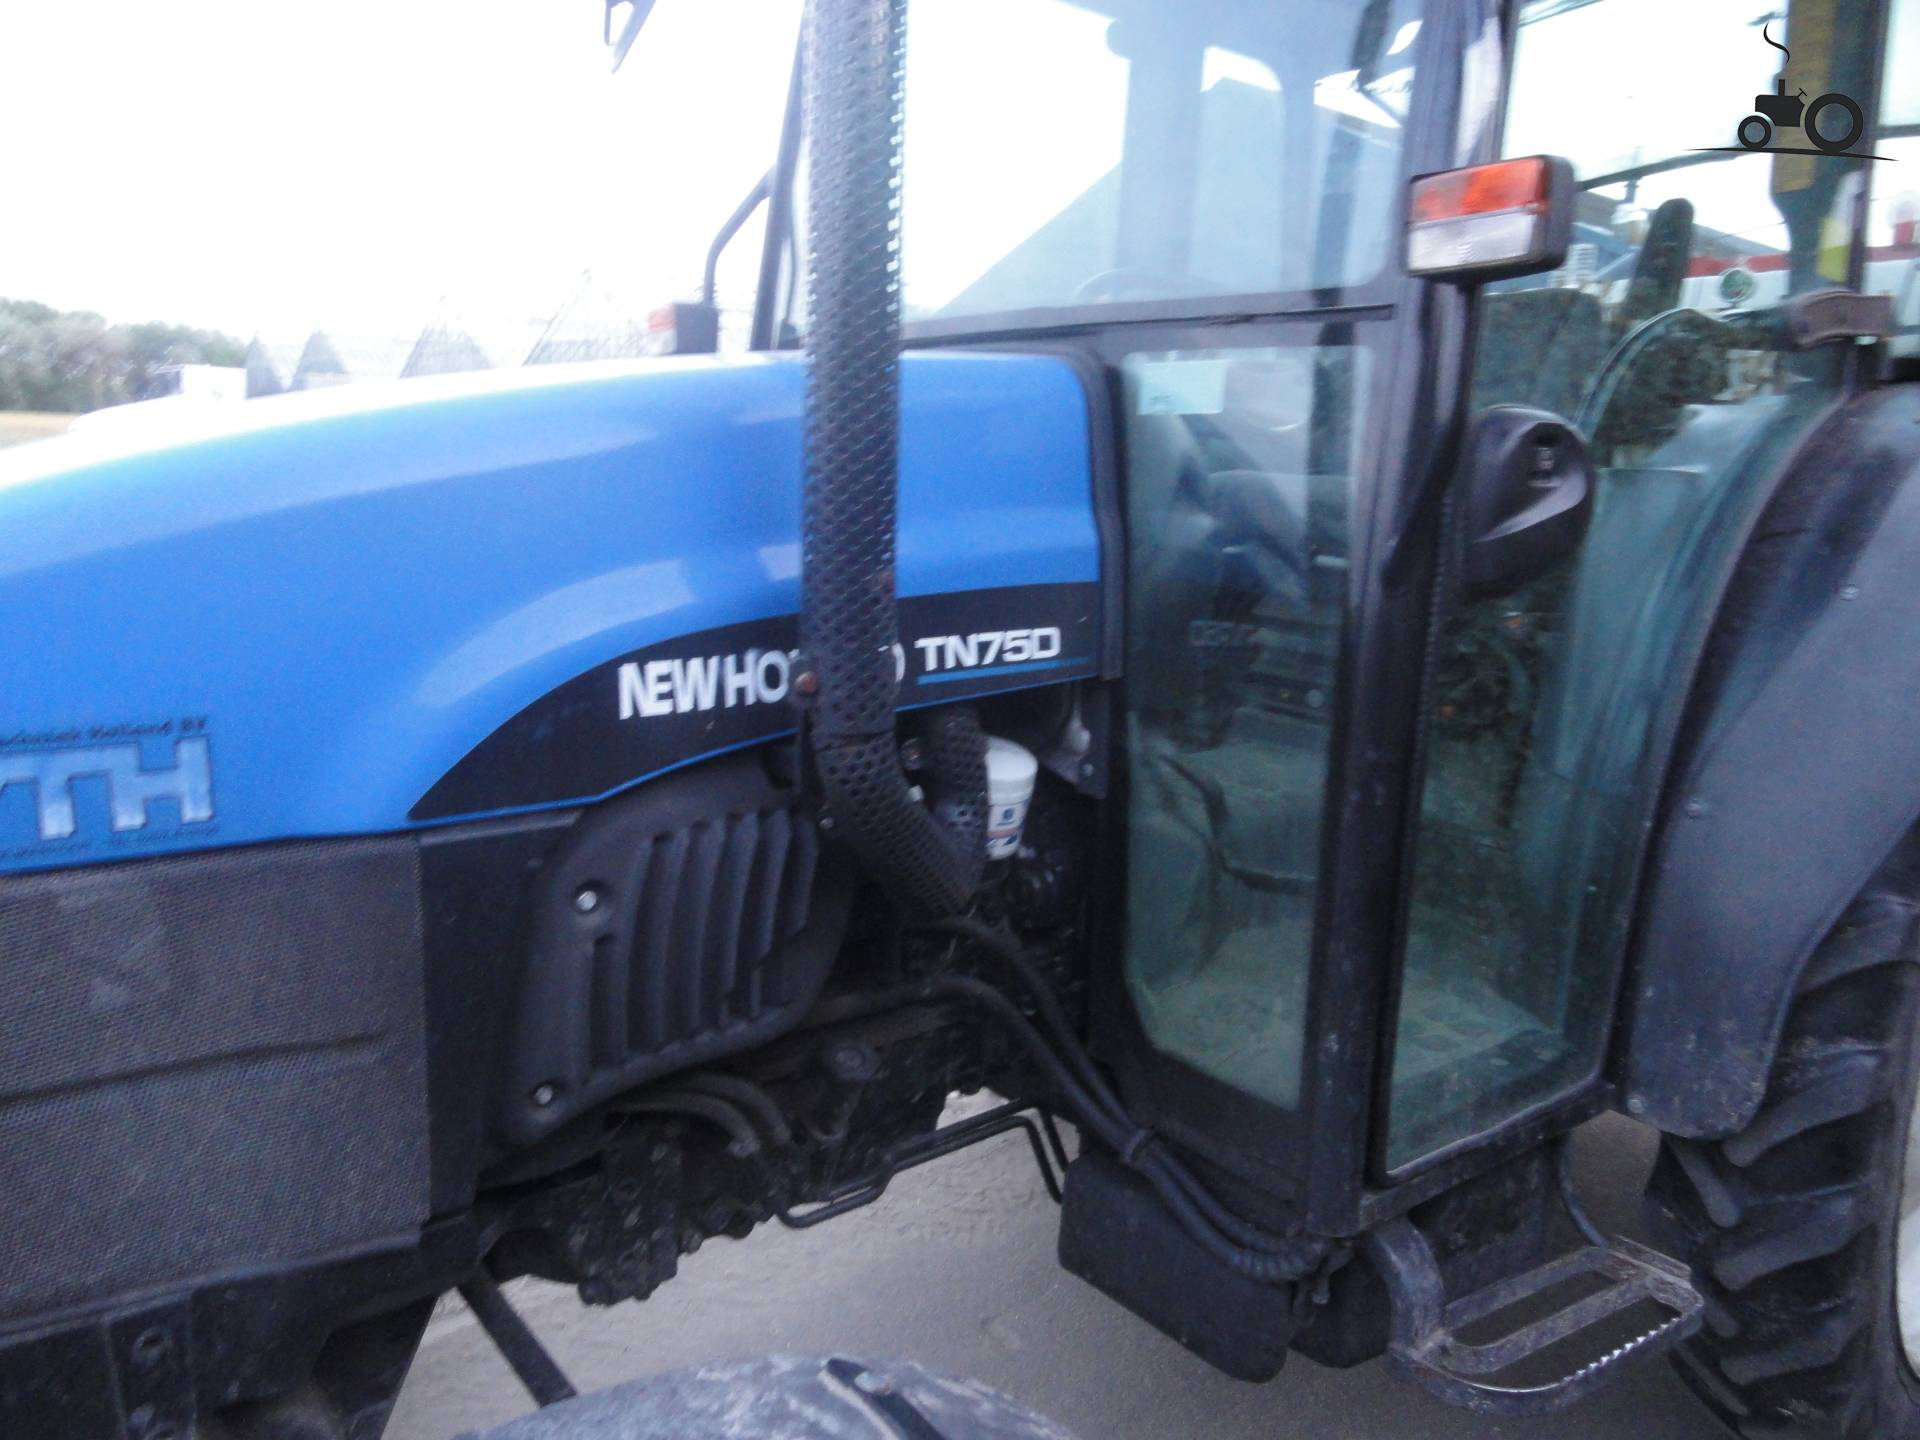 New holland tn 75 D specs Manual